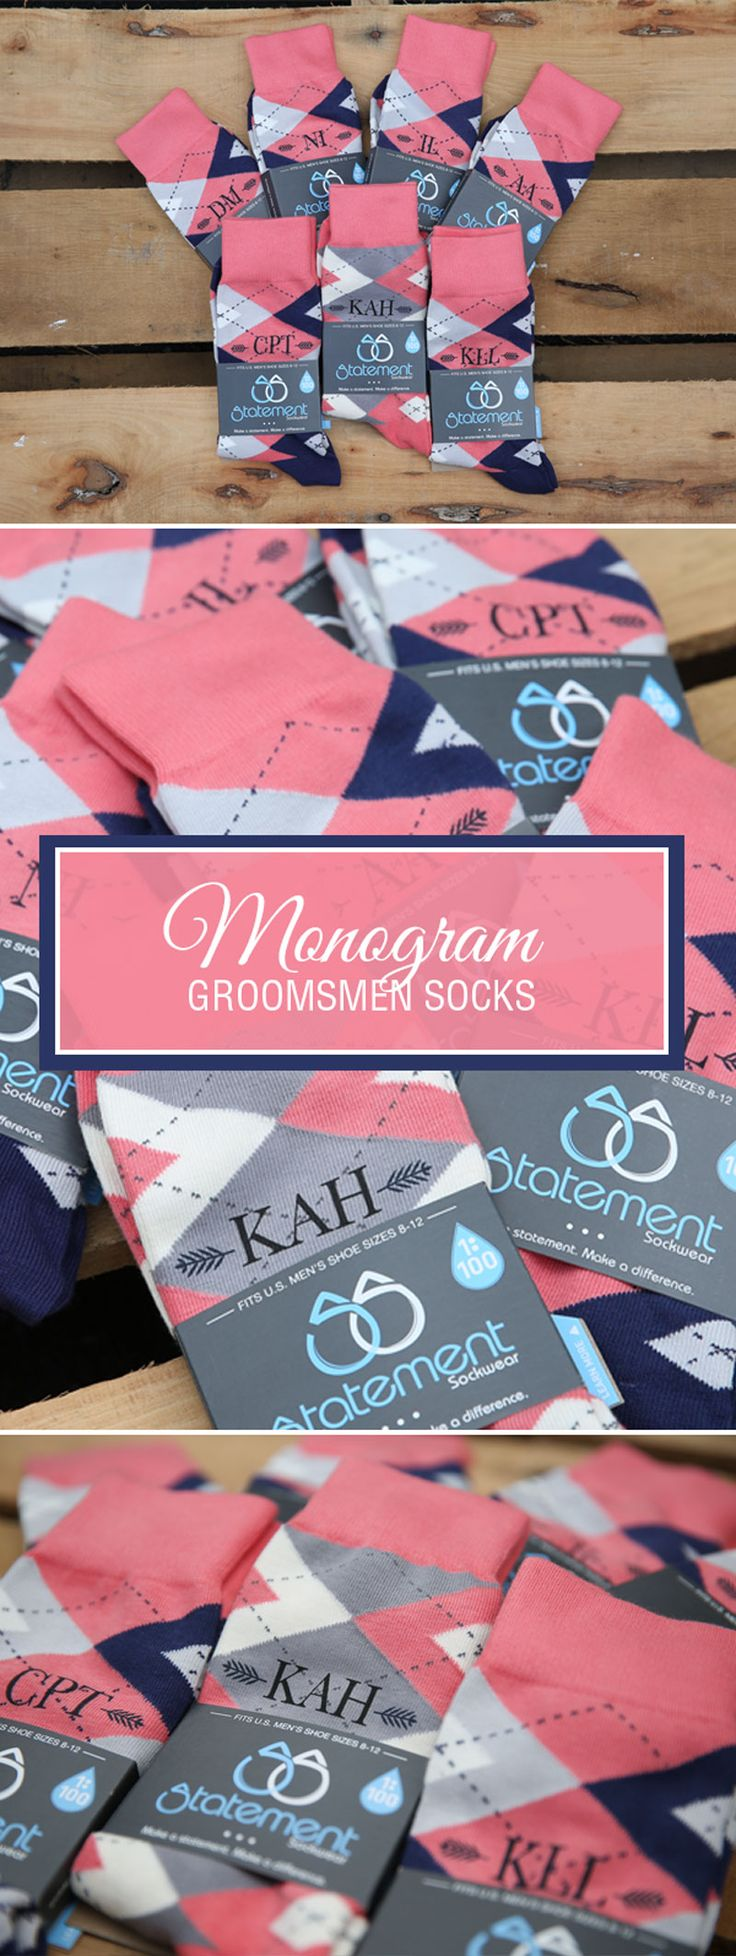 Looking for a way to customize your coral and navy wedding? We are now customizing our most popular wedding colors with wedding dates, wedding text and monograms. Give your groomsmen in your wedding a gift they will never forget that will always remind them of your big wedding day: custom coral groomsmen socks. Shop these coral and navy custom monogram socks and more.